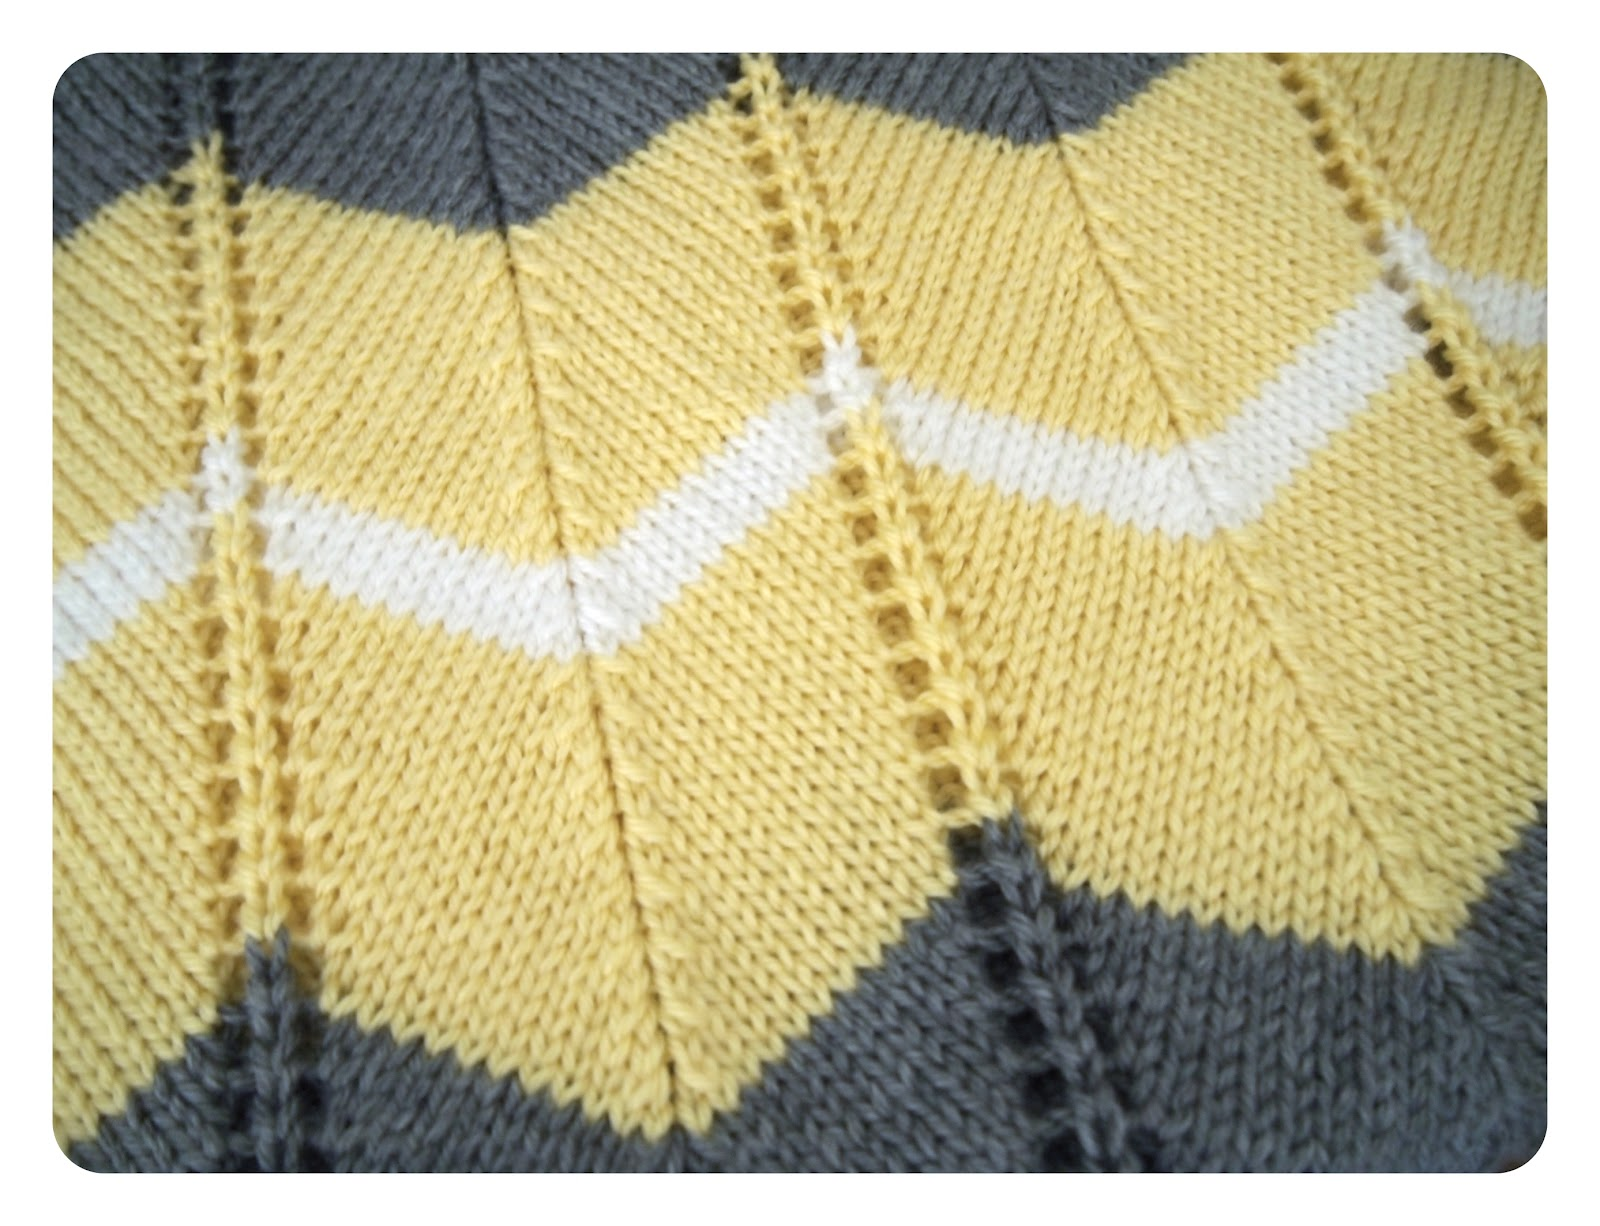 67aa982f2ac2 Knitting Lace Patterns How To ~ Ipaa.info for .